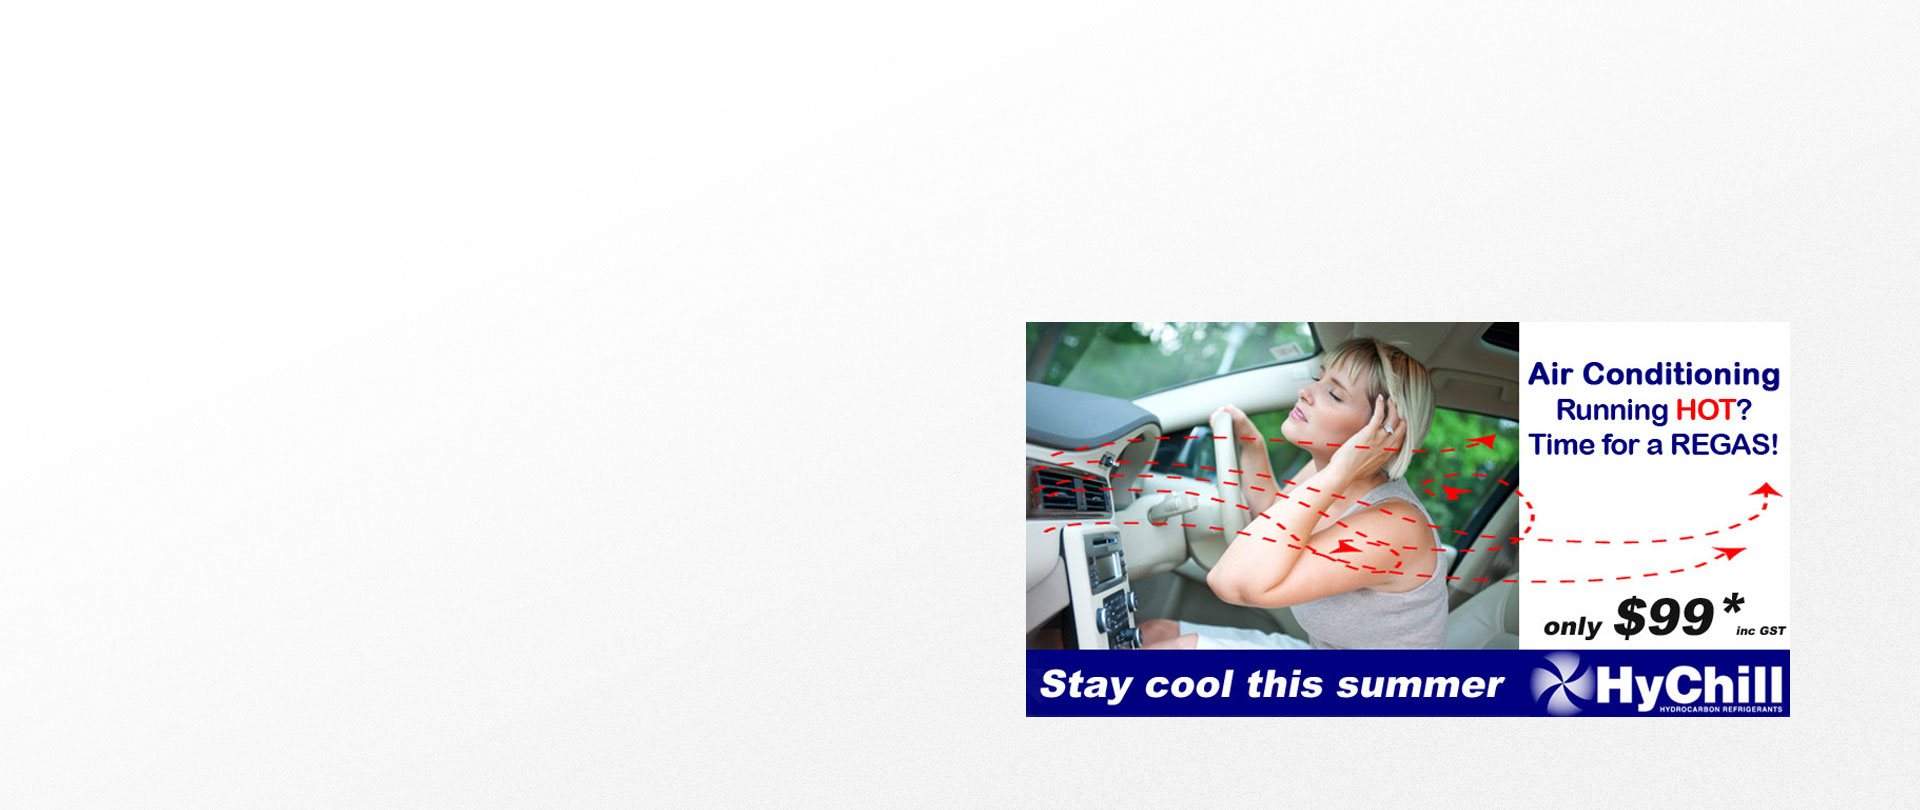 REGAS Air Conditioner in your vehicle and stay COOL this summer!